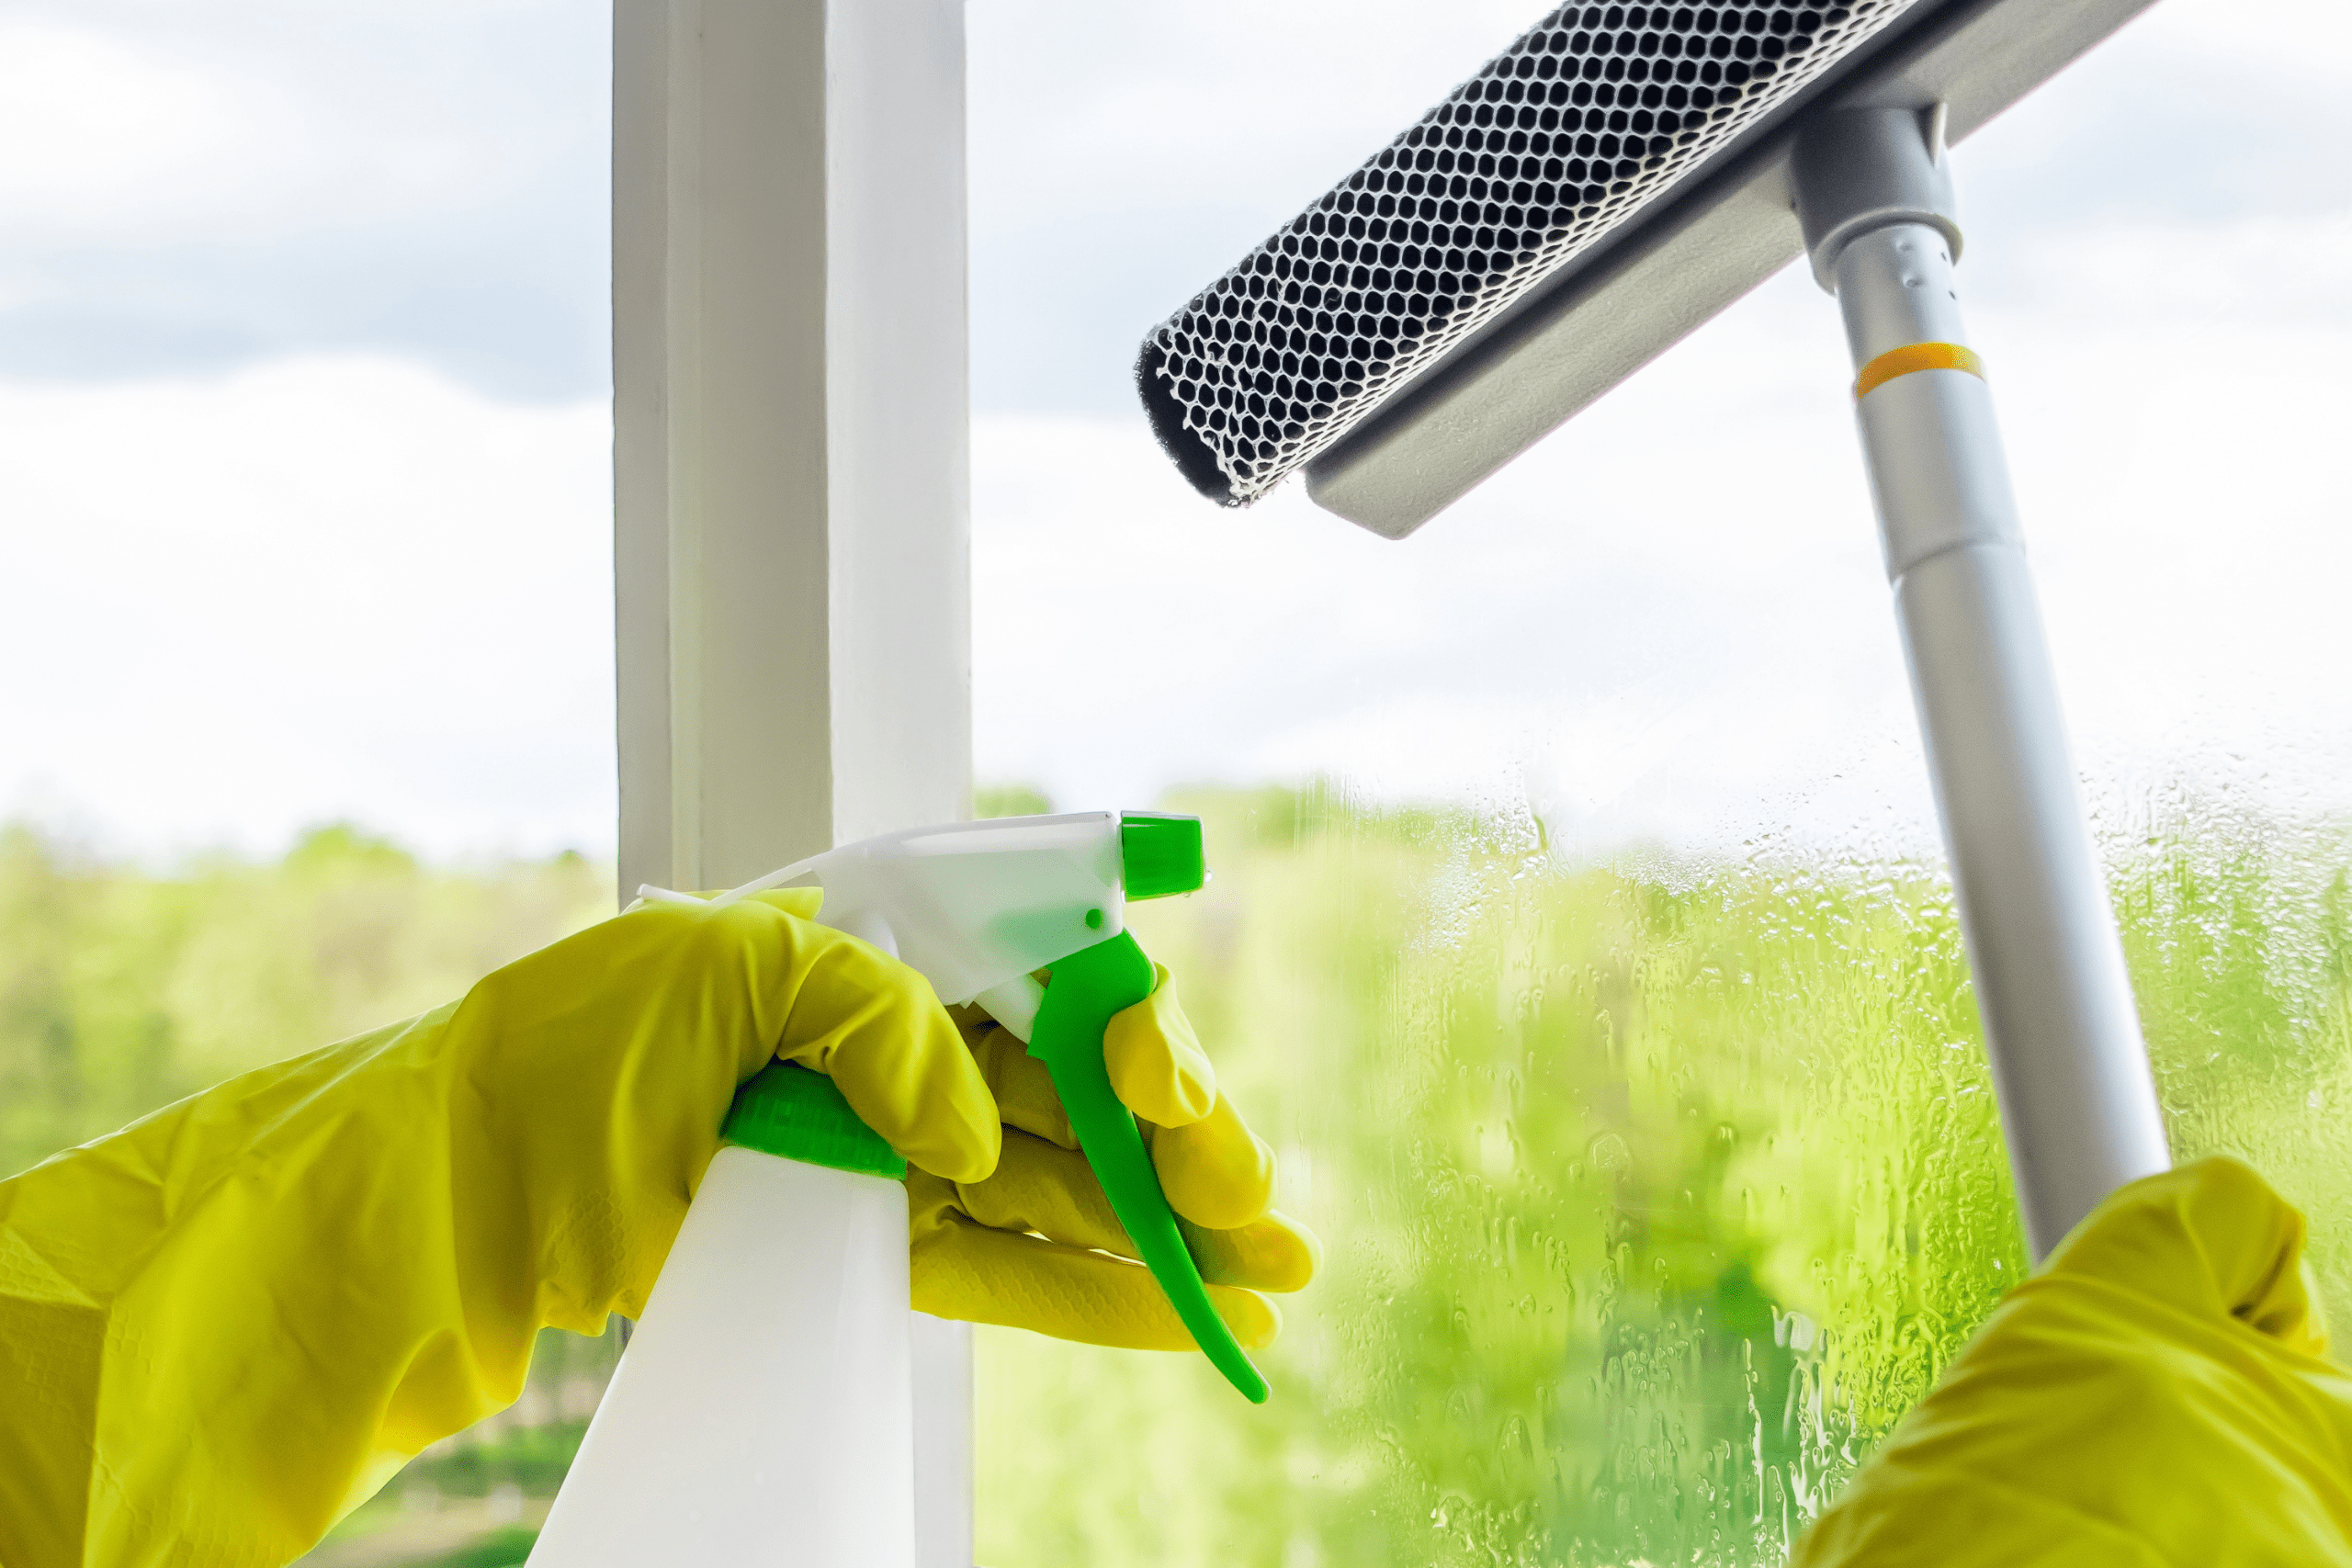 Washing windows. Home cleaning concept. Woman in yellow rubber gloves spray liquid for glasses. Banner format The Clean Life